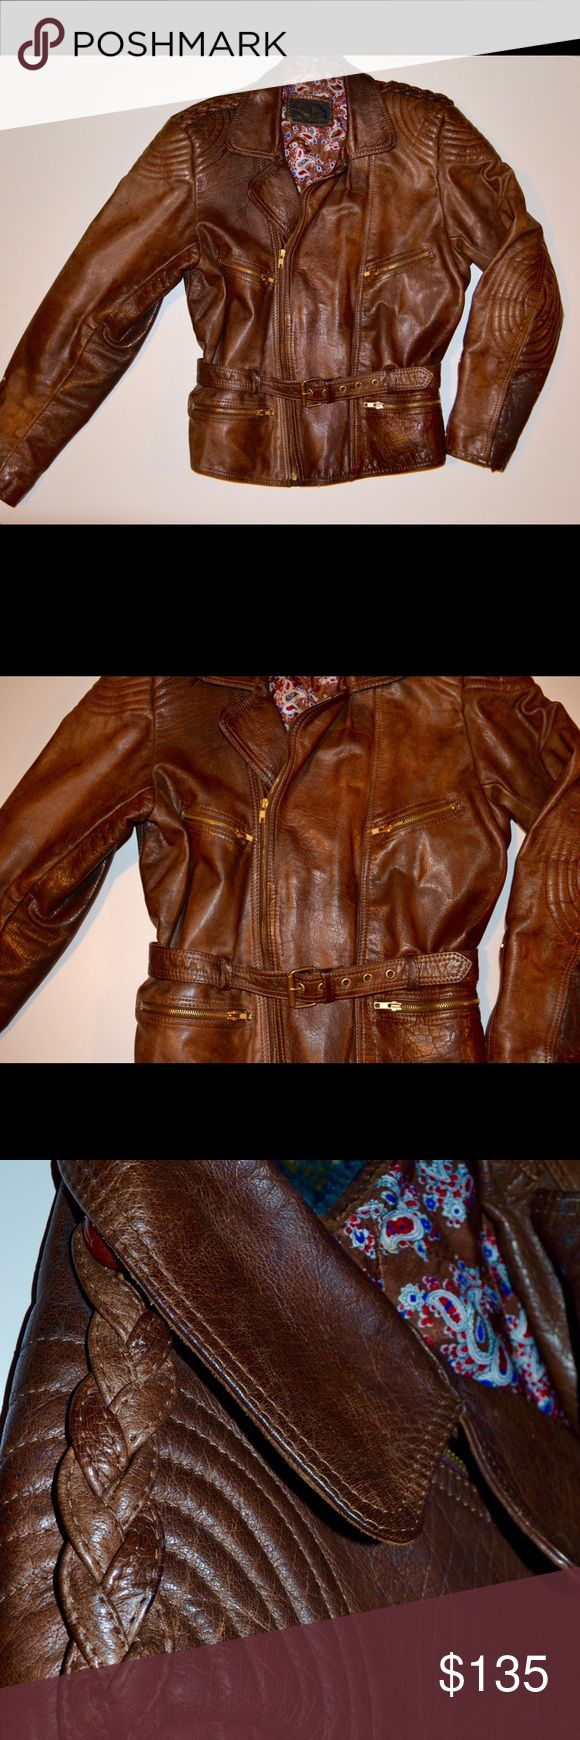 Brown leather Motorcycle Jacket! $85 OBO This is such an awesome jacket! It's gorgeous full leather, lined, YKK zippers, made in Germany, and has some really awesome detail on it! It's perfectly broken in and ready to rock! Jackets & Coats Utility Jackets